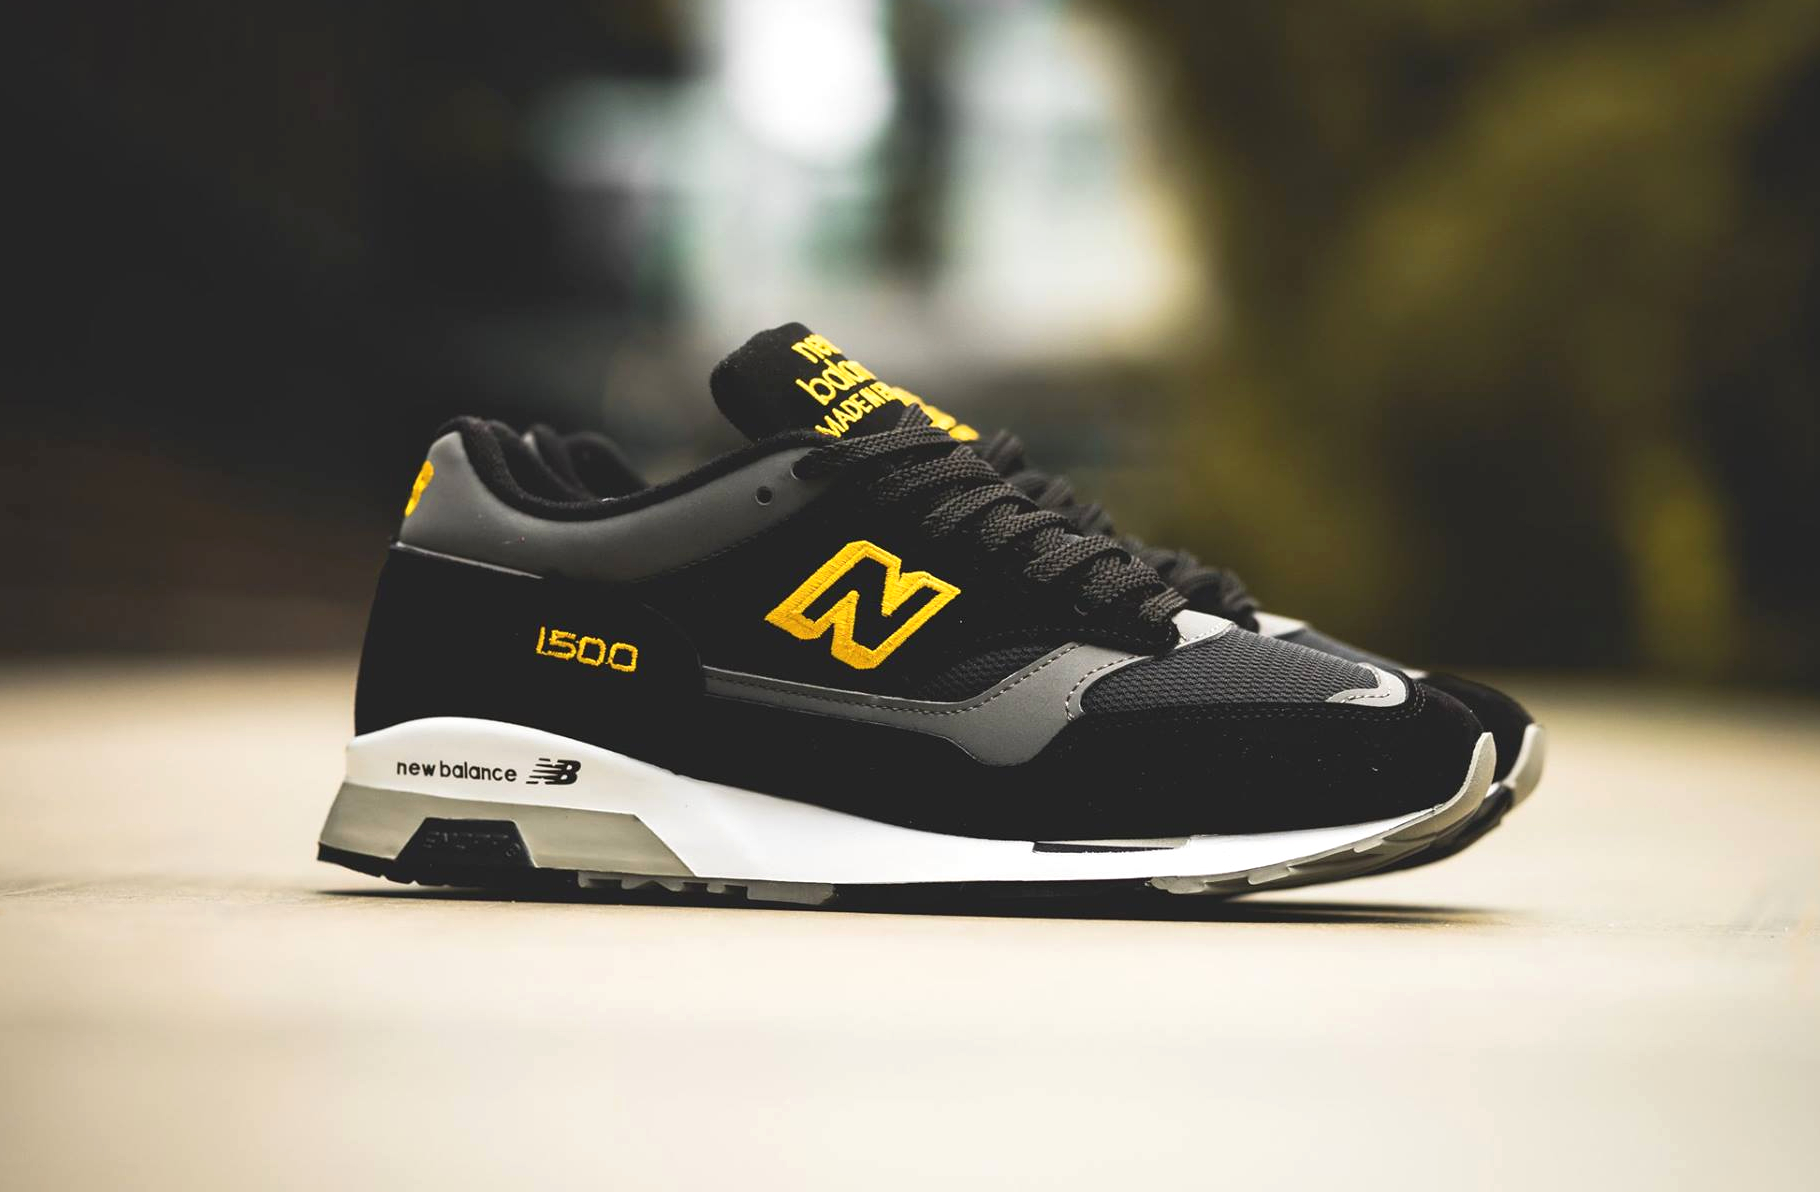 New Balance M1500BY OG 'Black Yellow' Retro 2016 post image